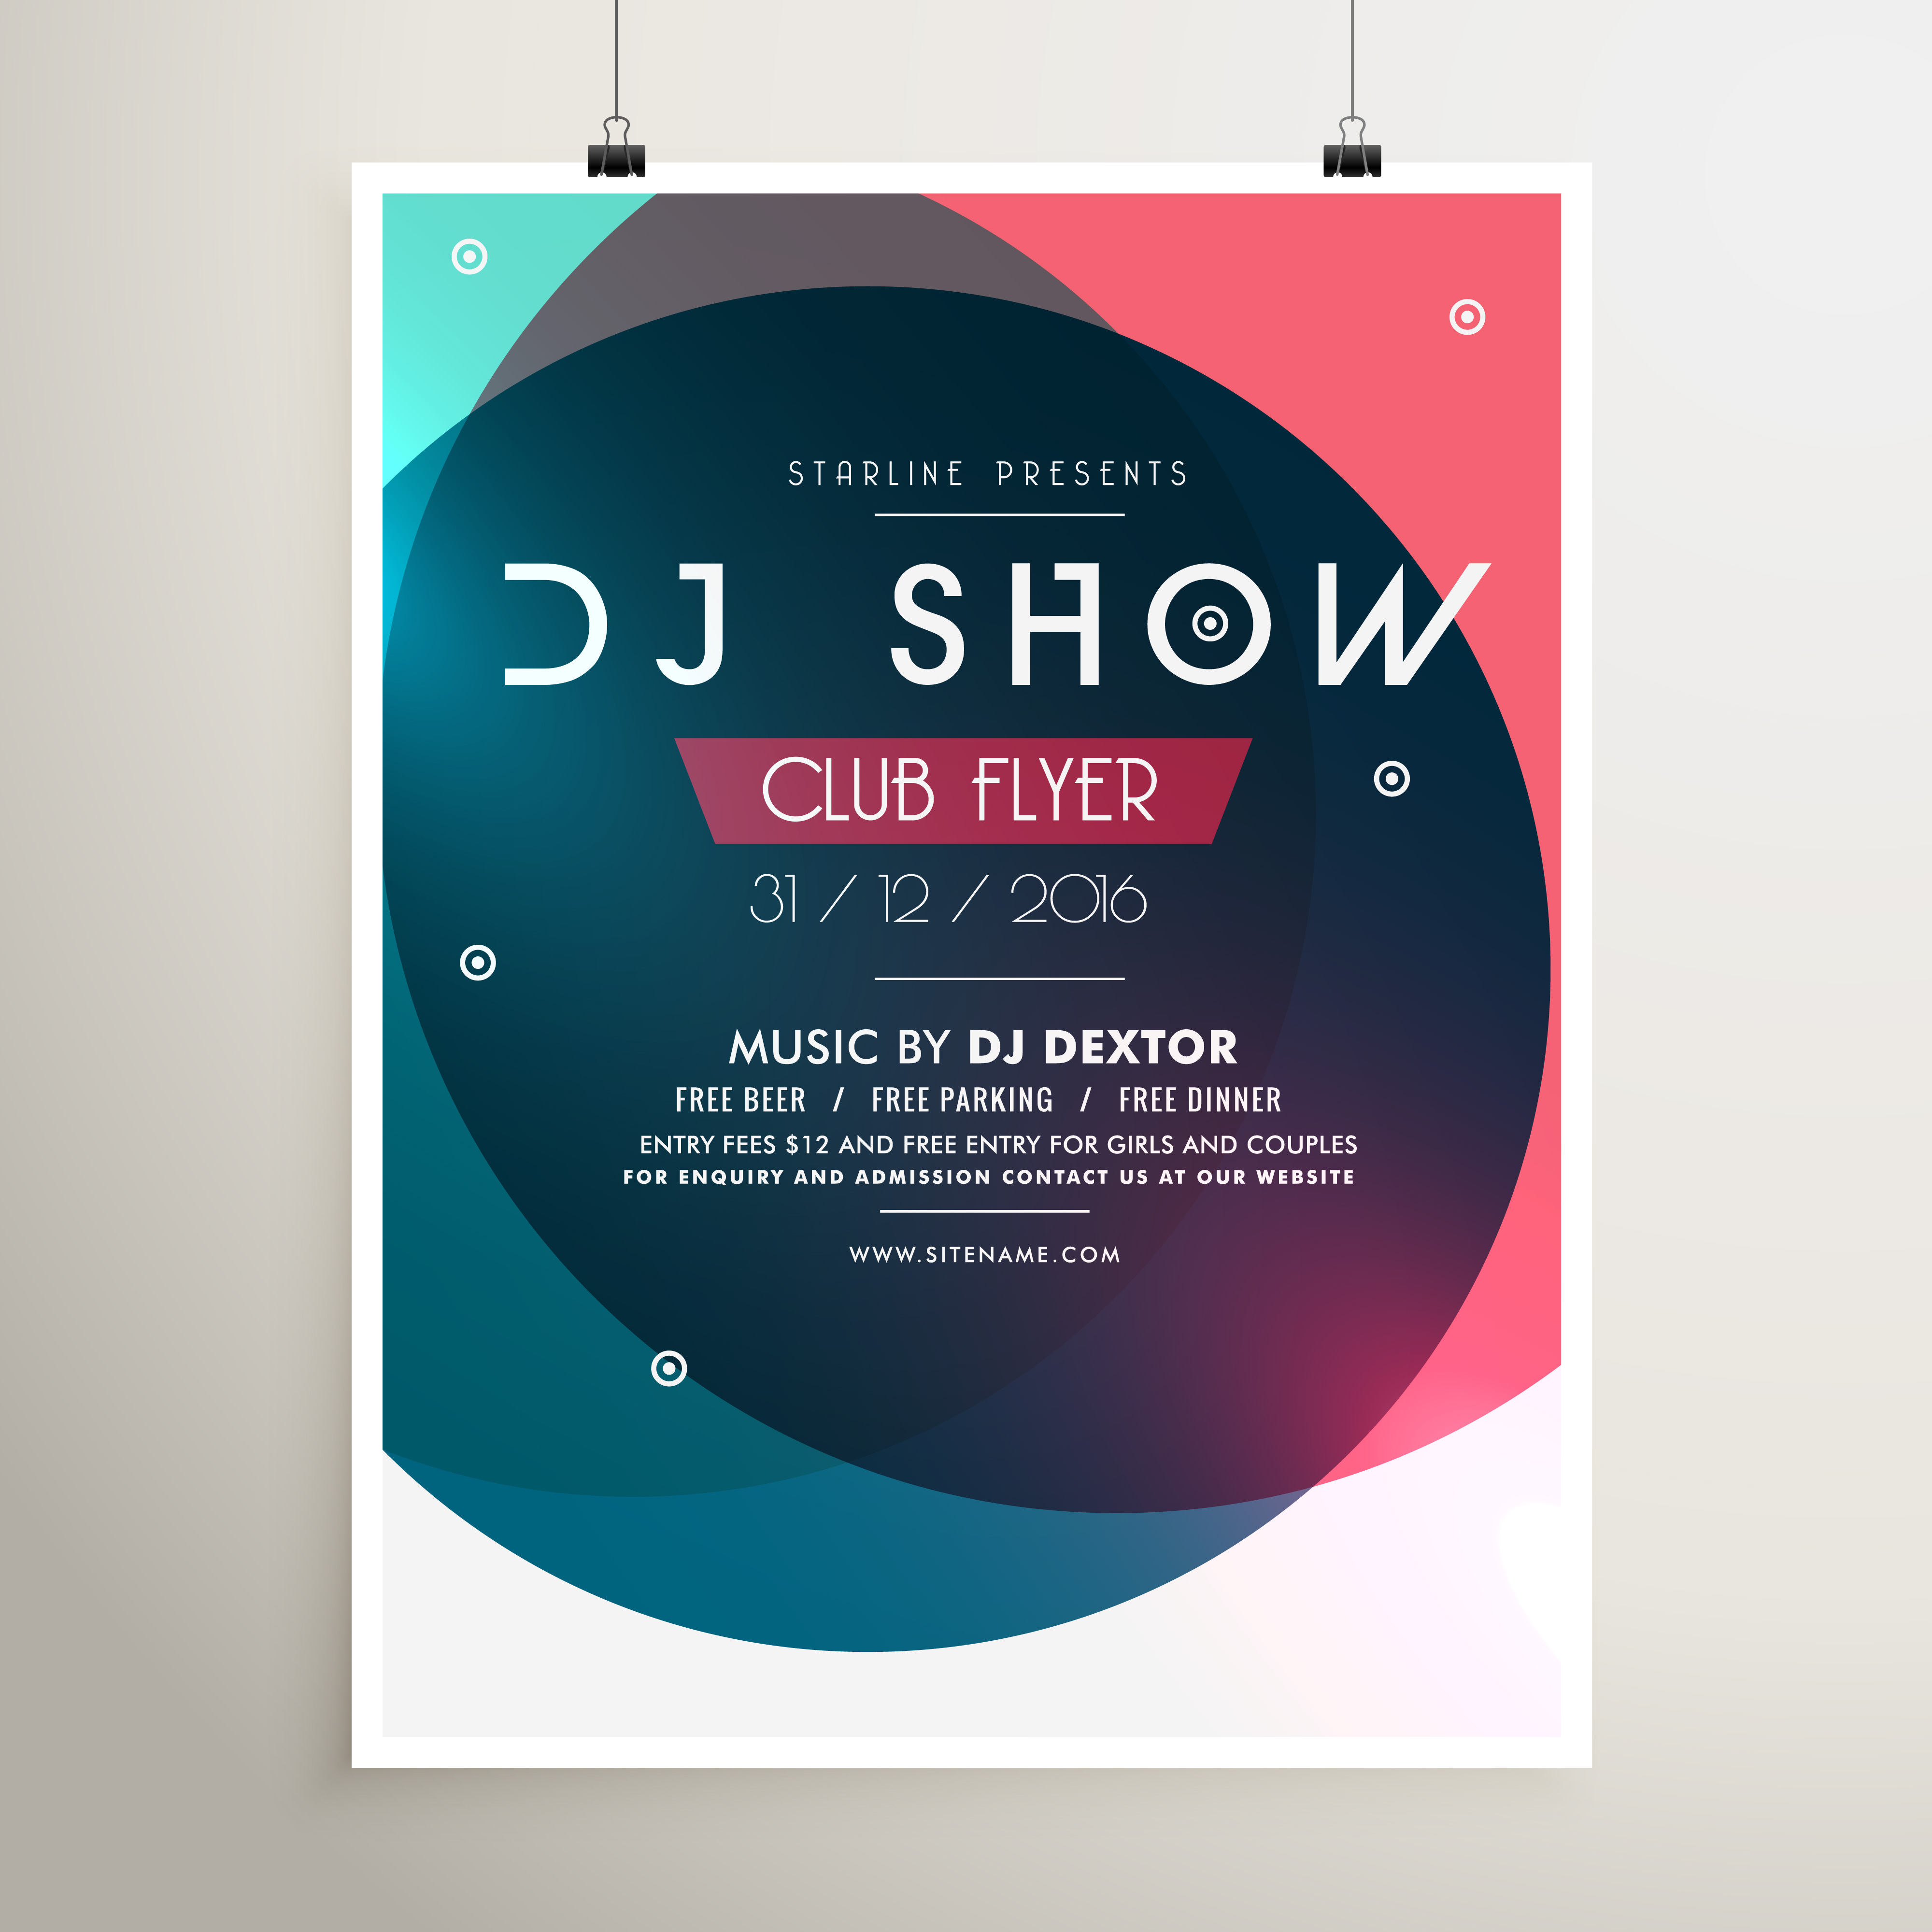 Event: Awesome Music Party Event Flyer Template With Colorful